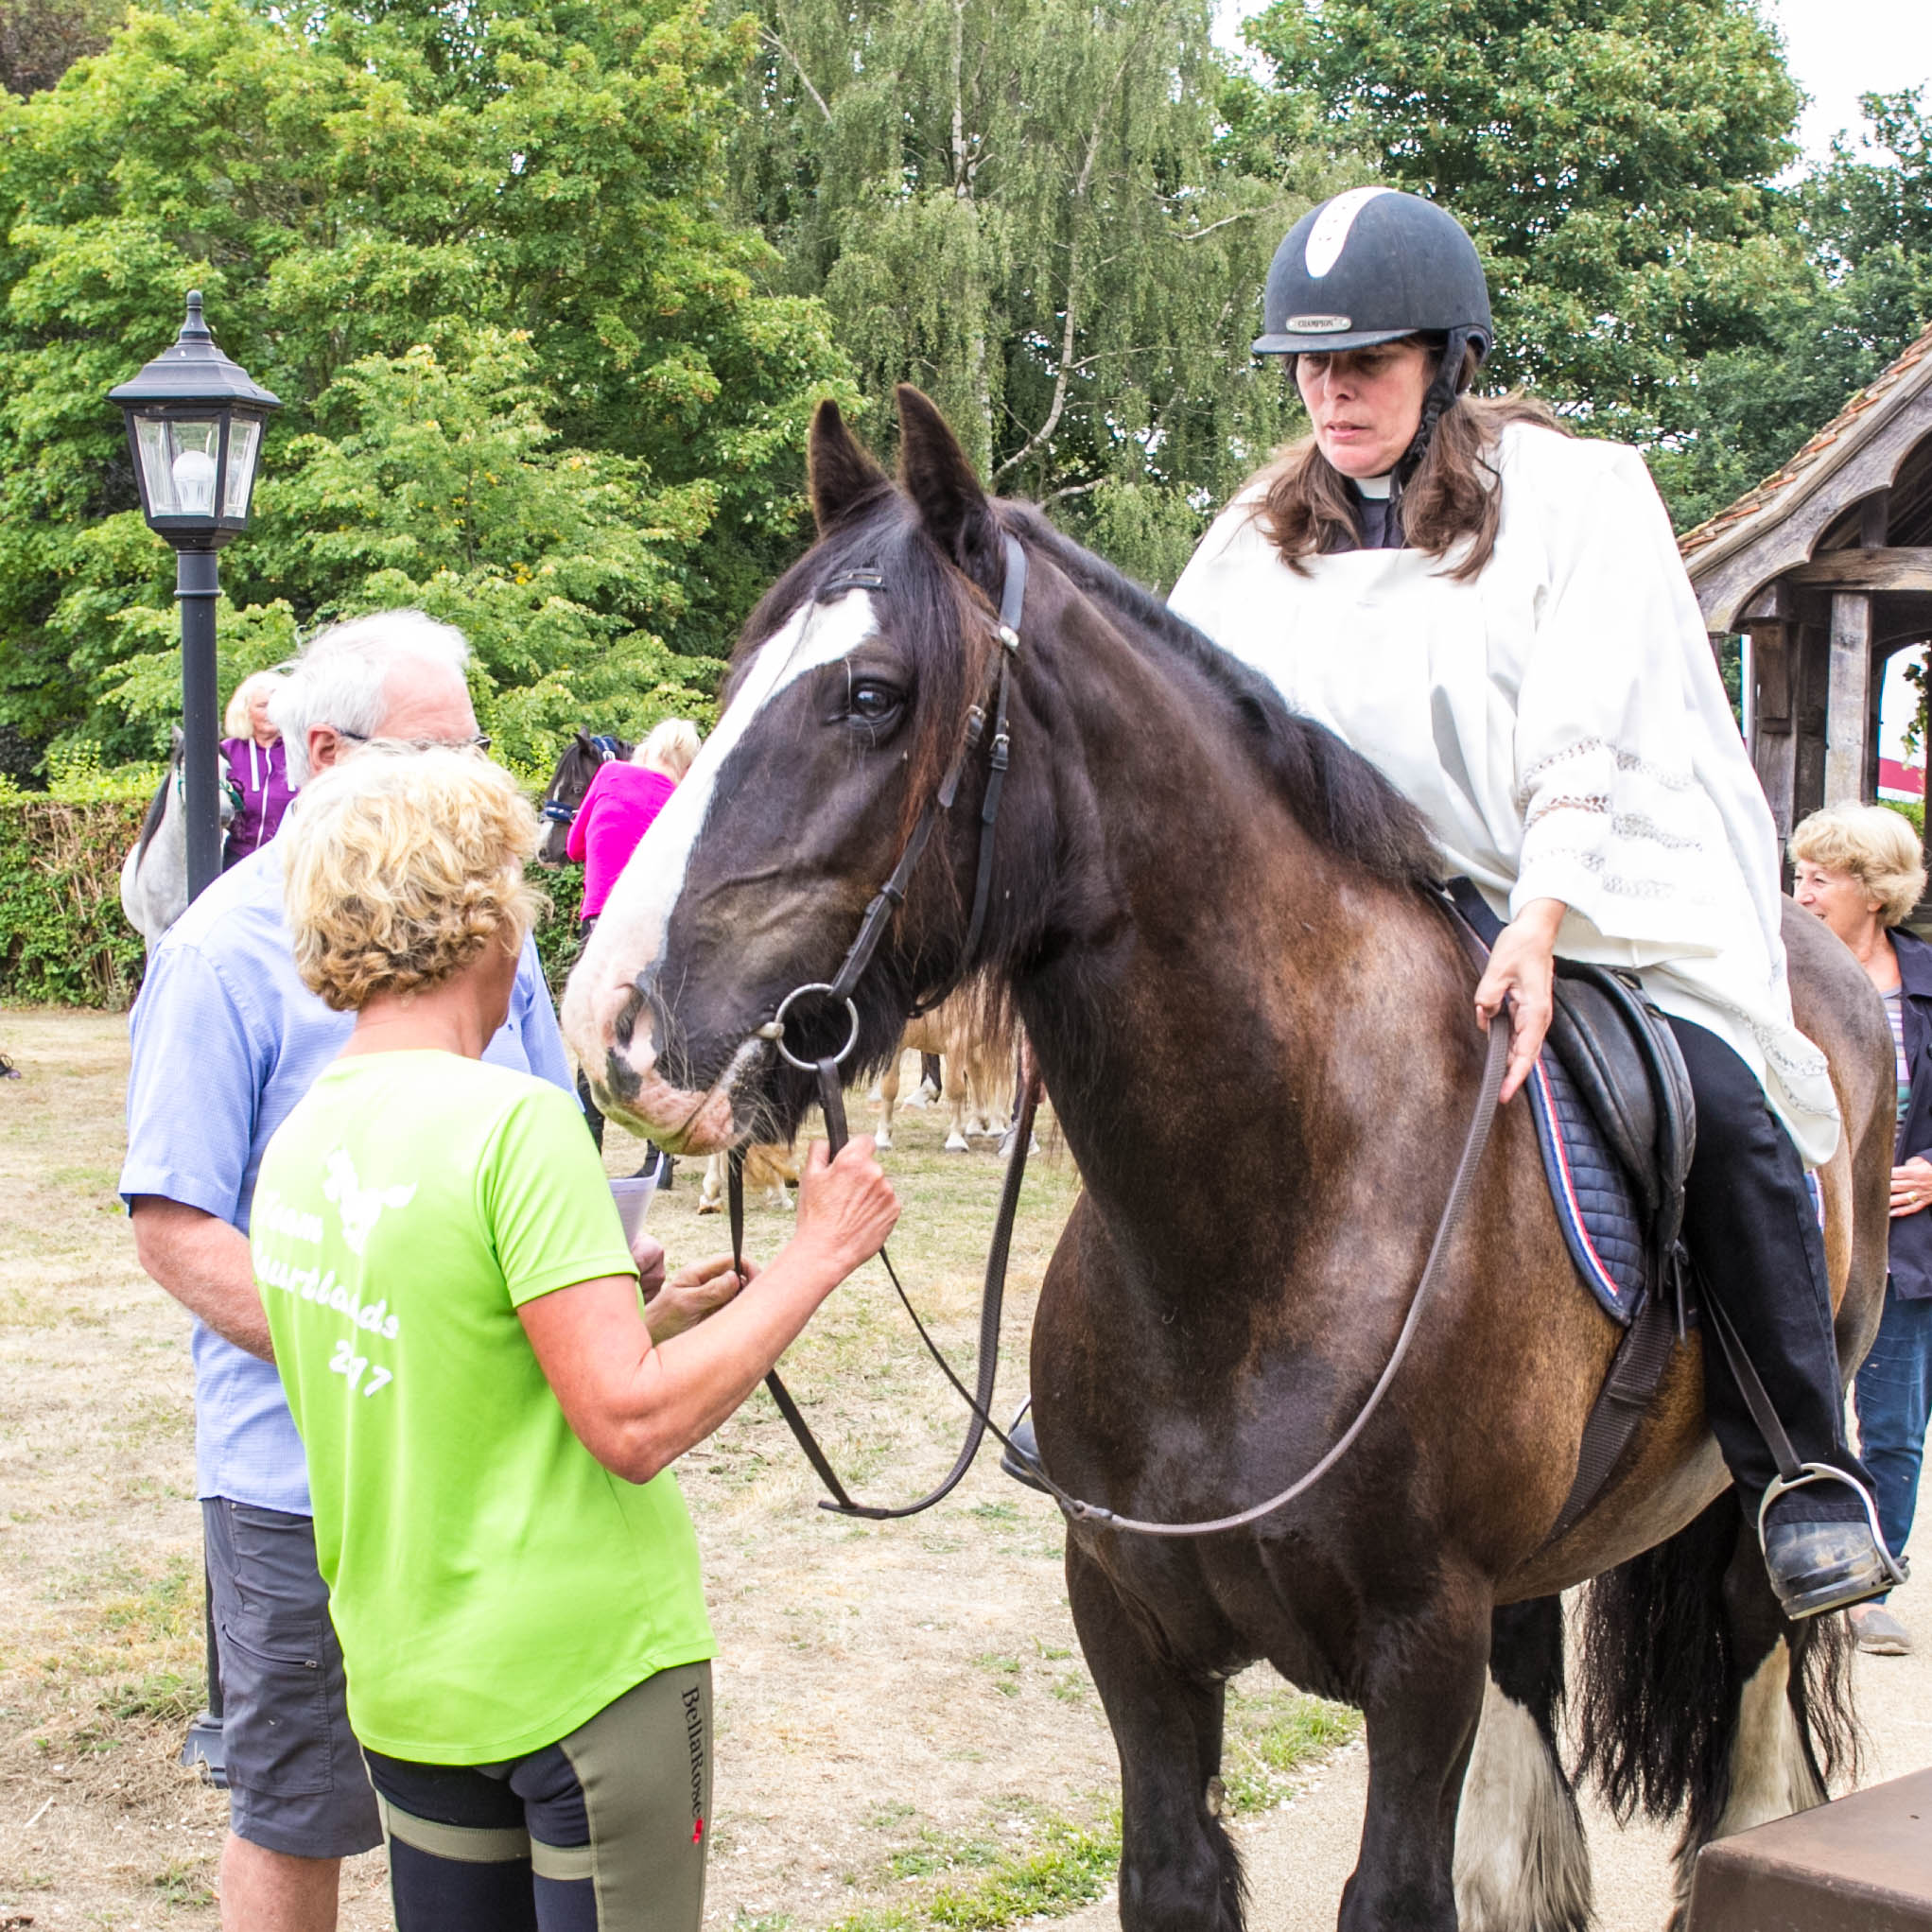 IMG 9792 Ginni on Horse Horse Blessing Service 12th August 2018-9792